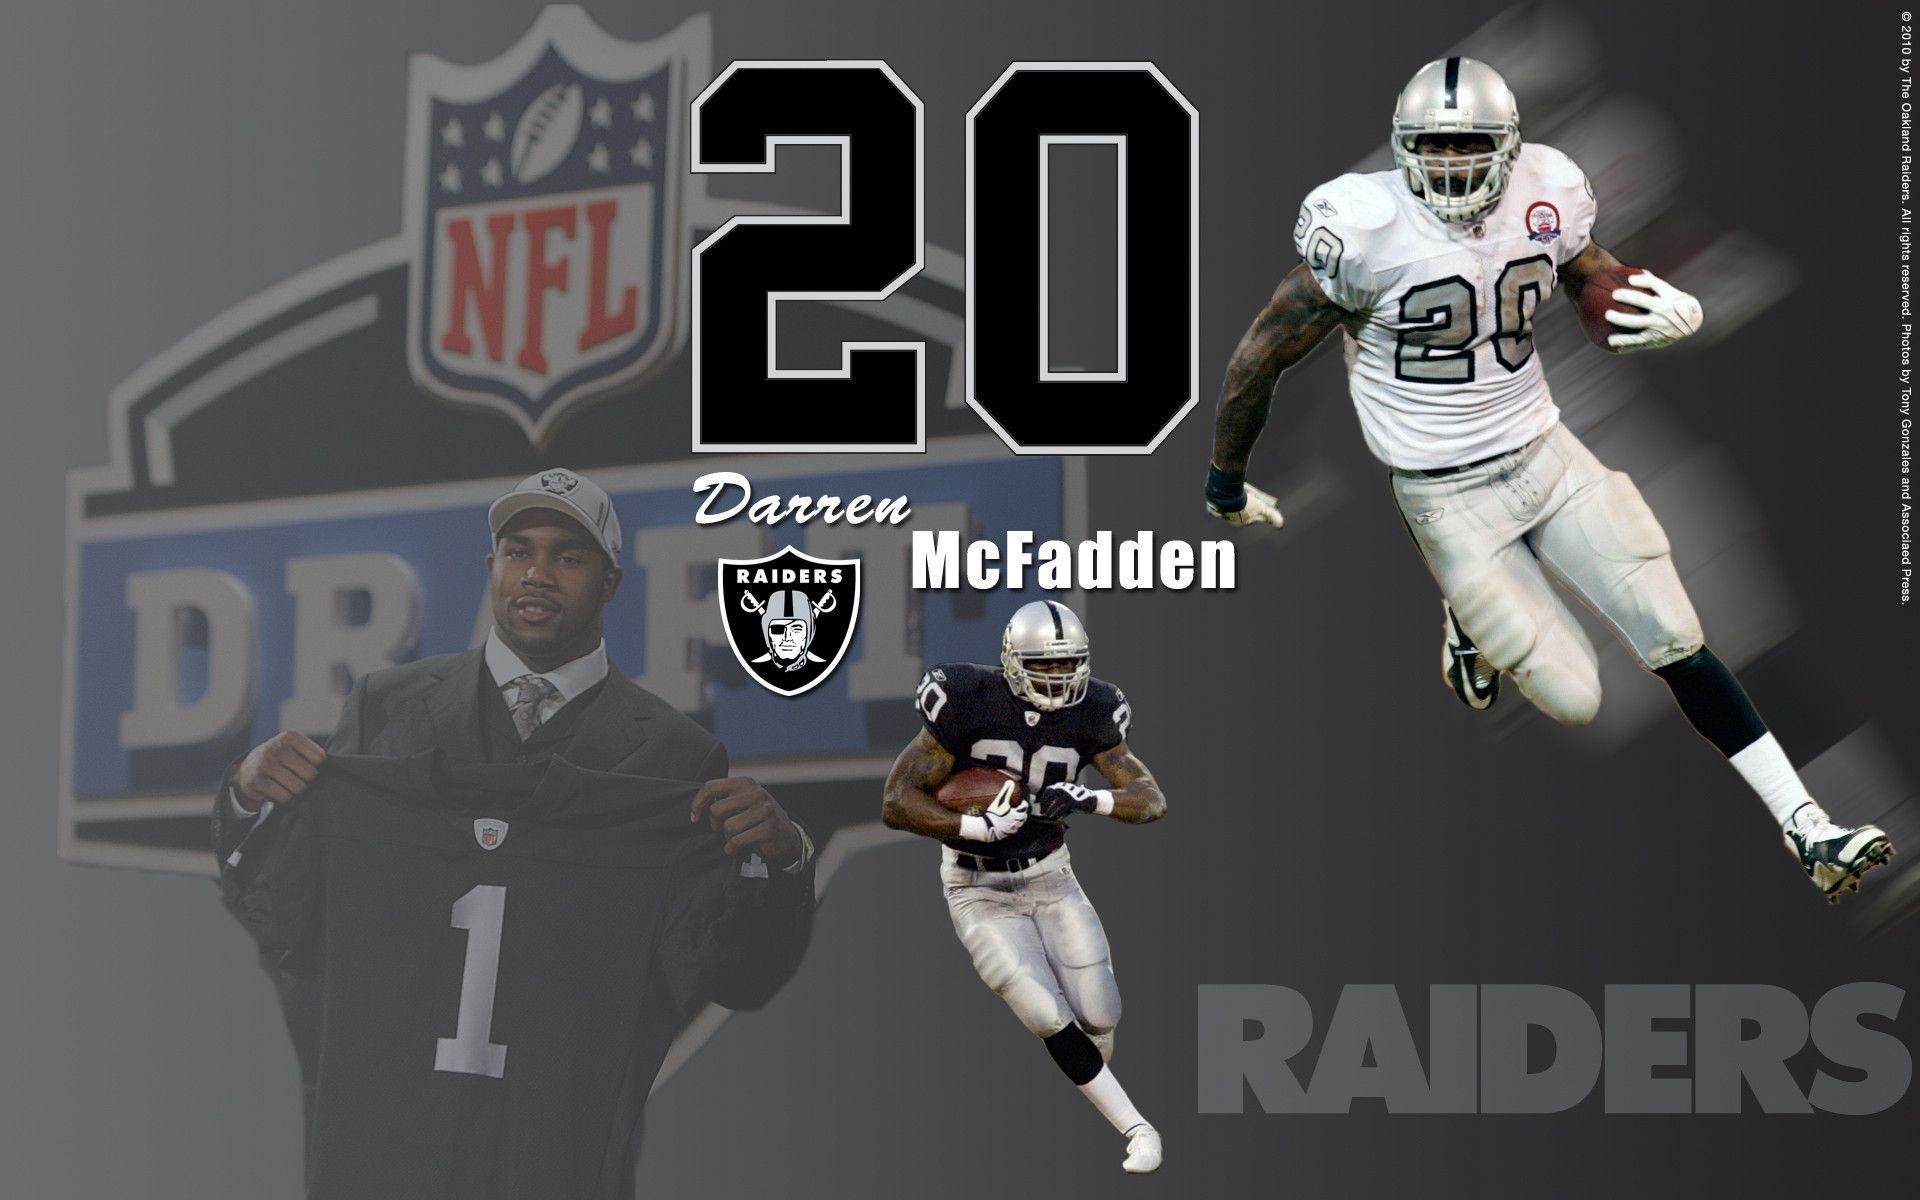 Awesome Oakland Raiders wallpaper   Oakland Raiders wallpapers